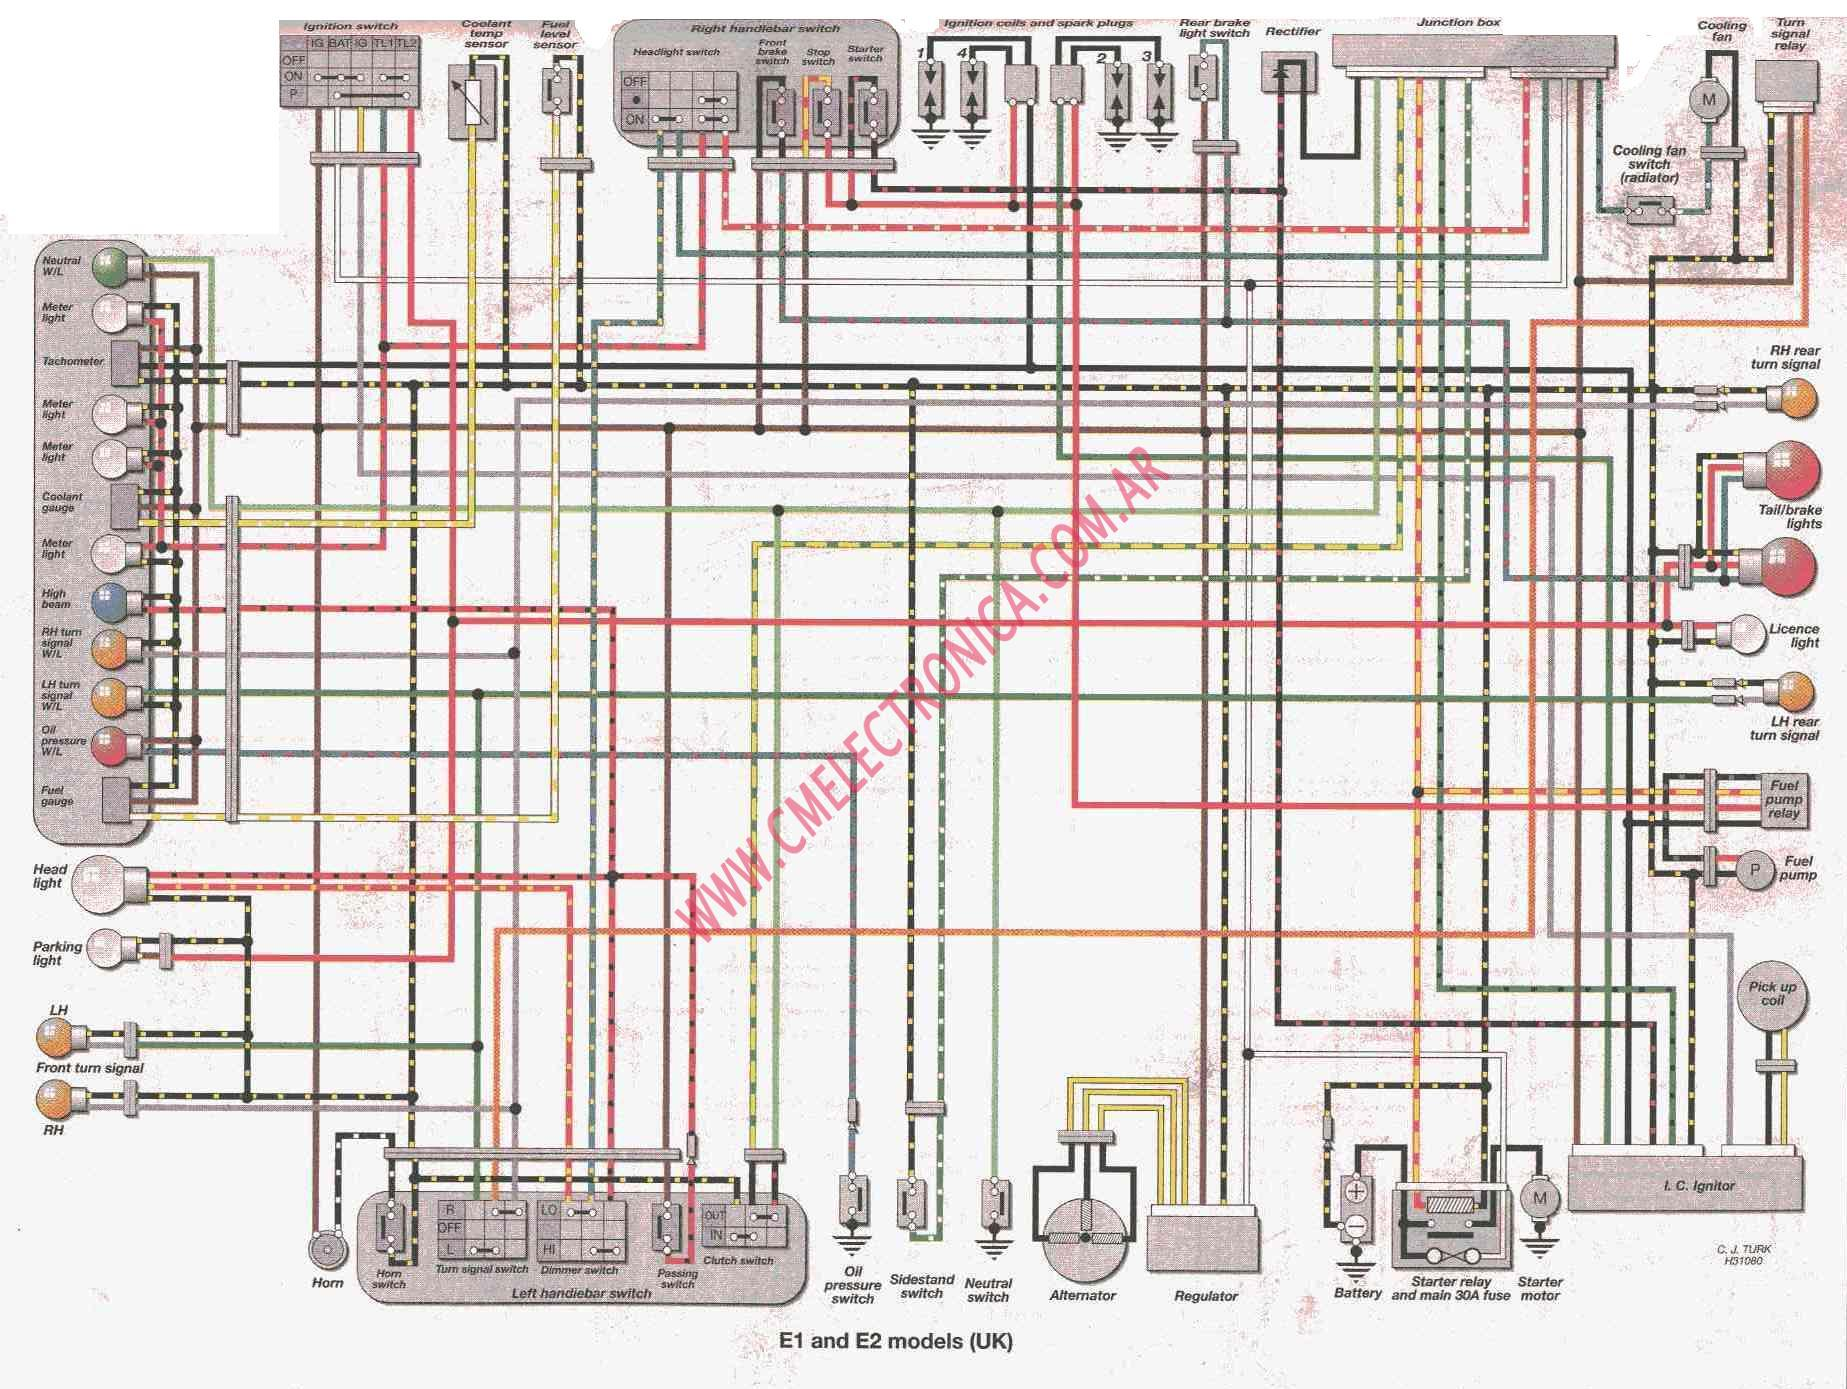 kawasaki zzr600_93 98?resize\\\\\\\\\\\\\\d665%2C500 yamaha mio sporty wiring diagram pdf efcaviation com yzf600r wiring diagram at webbmarketing.co